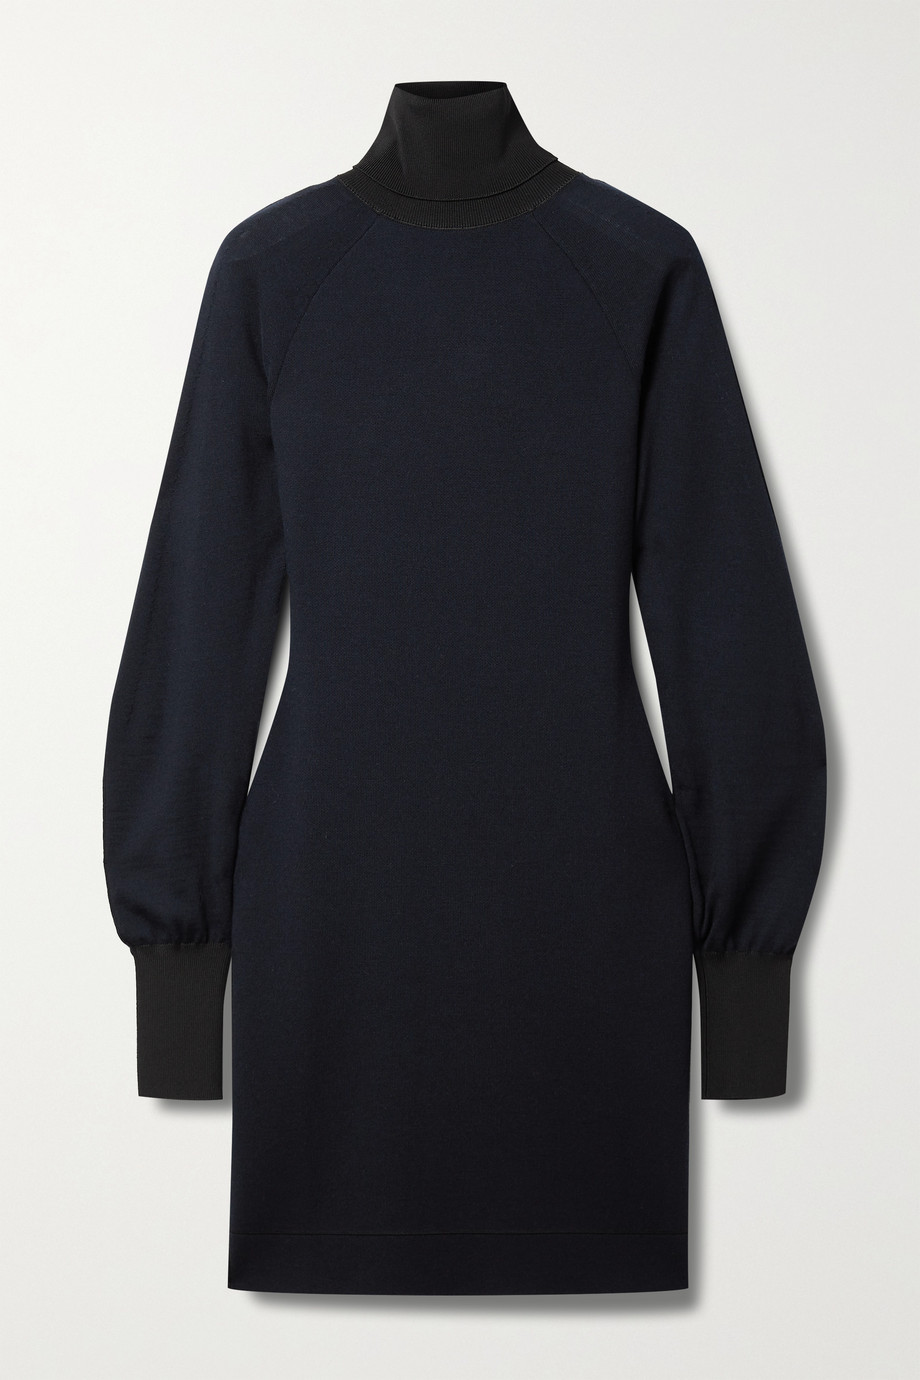 Victoria Beckham Two-tone wool-blend turtleneck mini dress